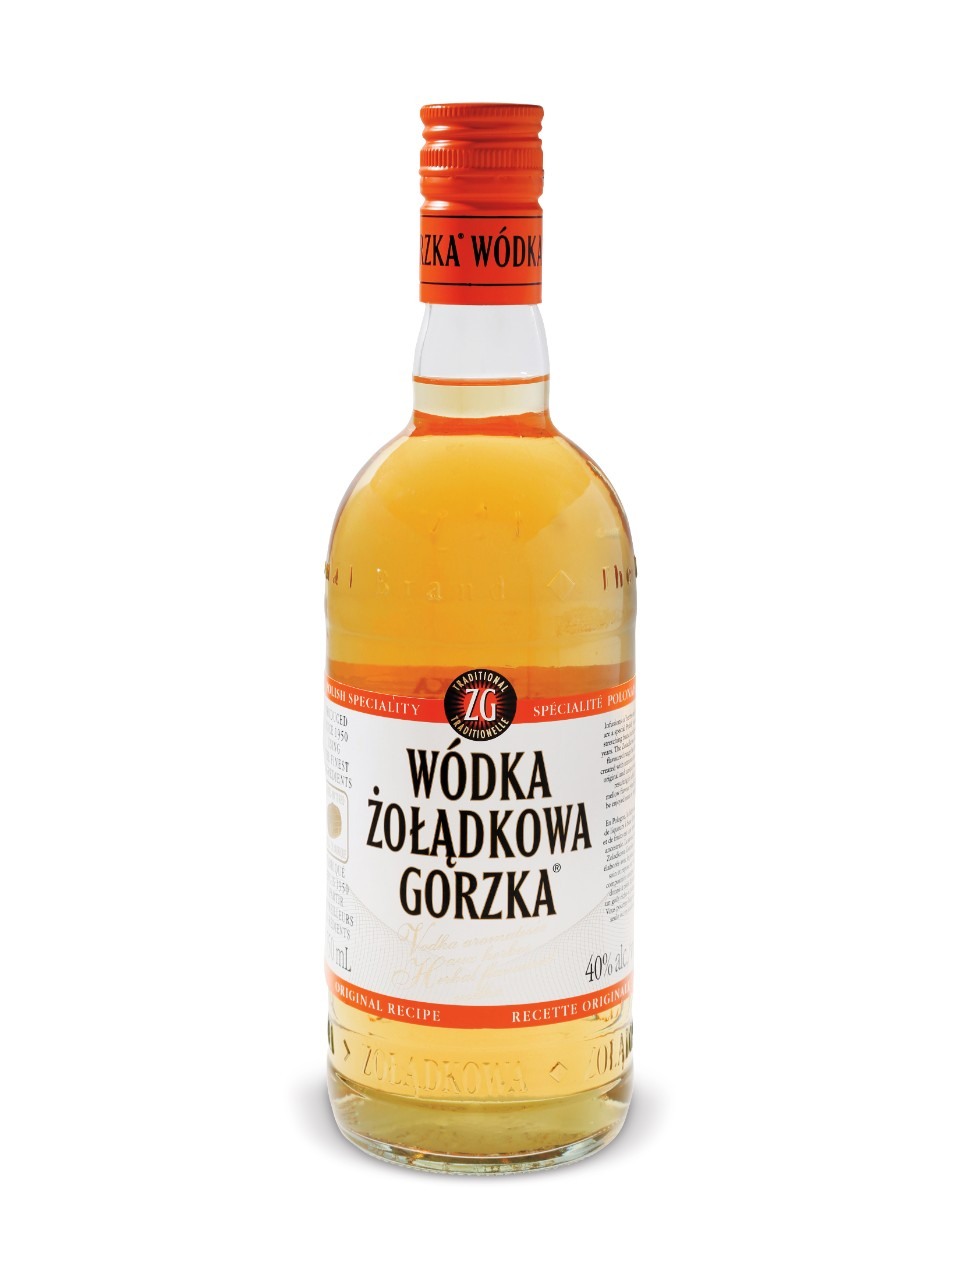 Image for Wódka Zoladkowa Gorzka from LCBO